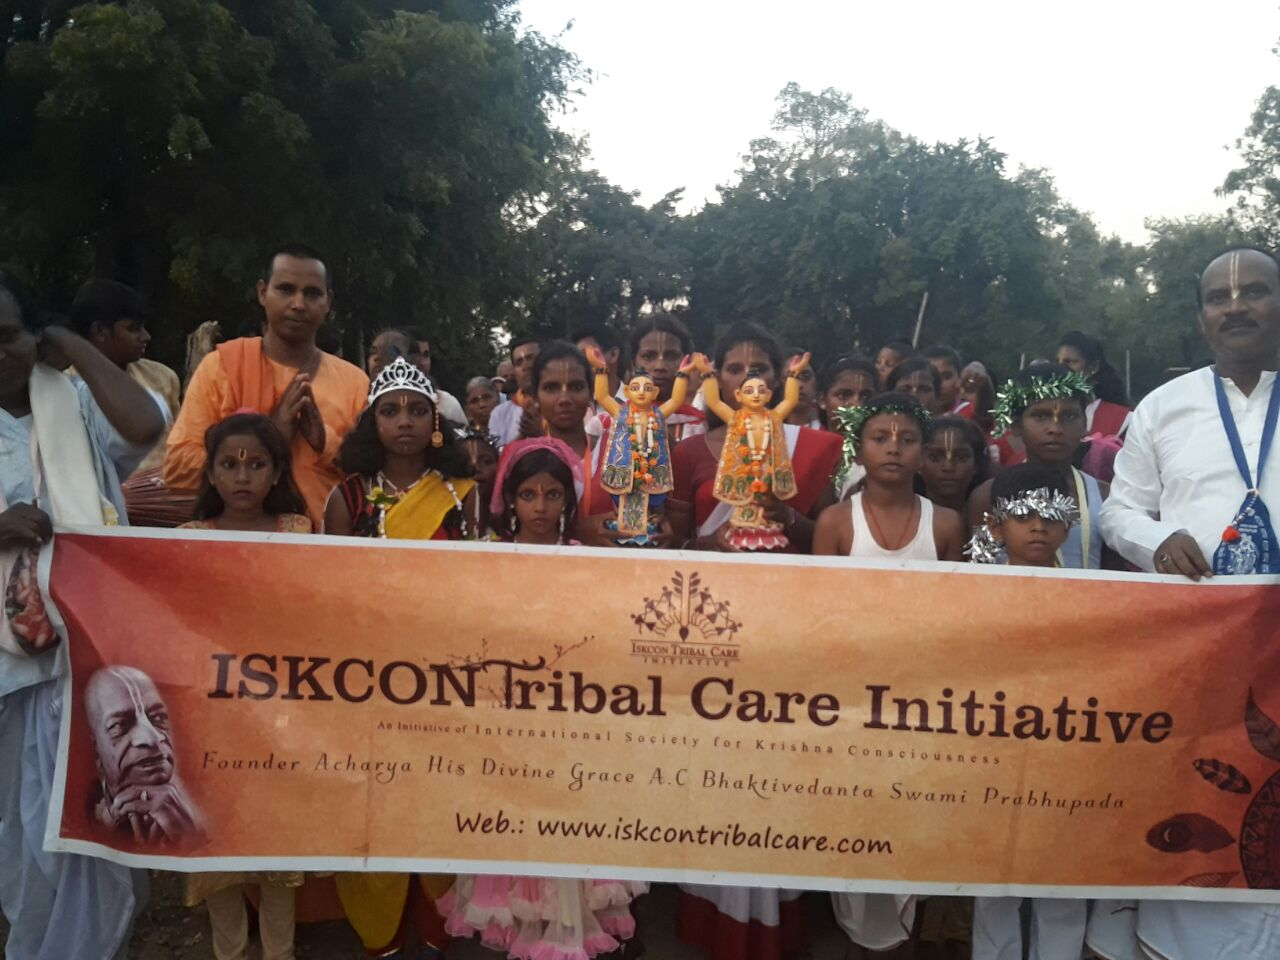 ISKCON Tribal Care